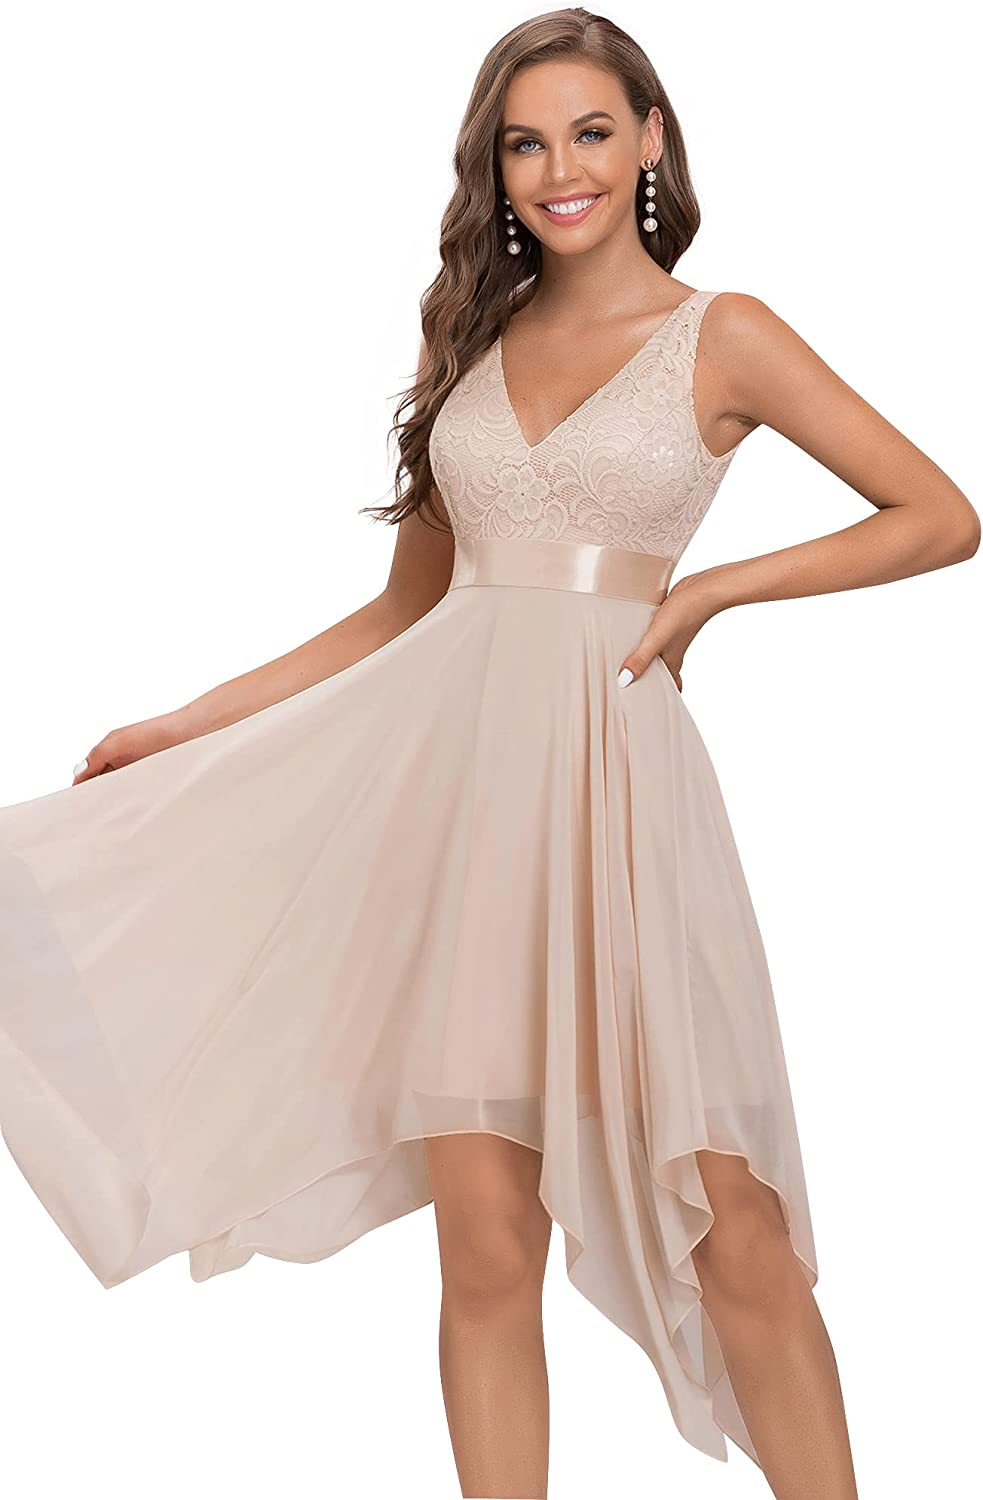 Alisapan Womens Double V Neck Contrast Lace Prom Dress Lace Chiffon Cocktail Dress 0207